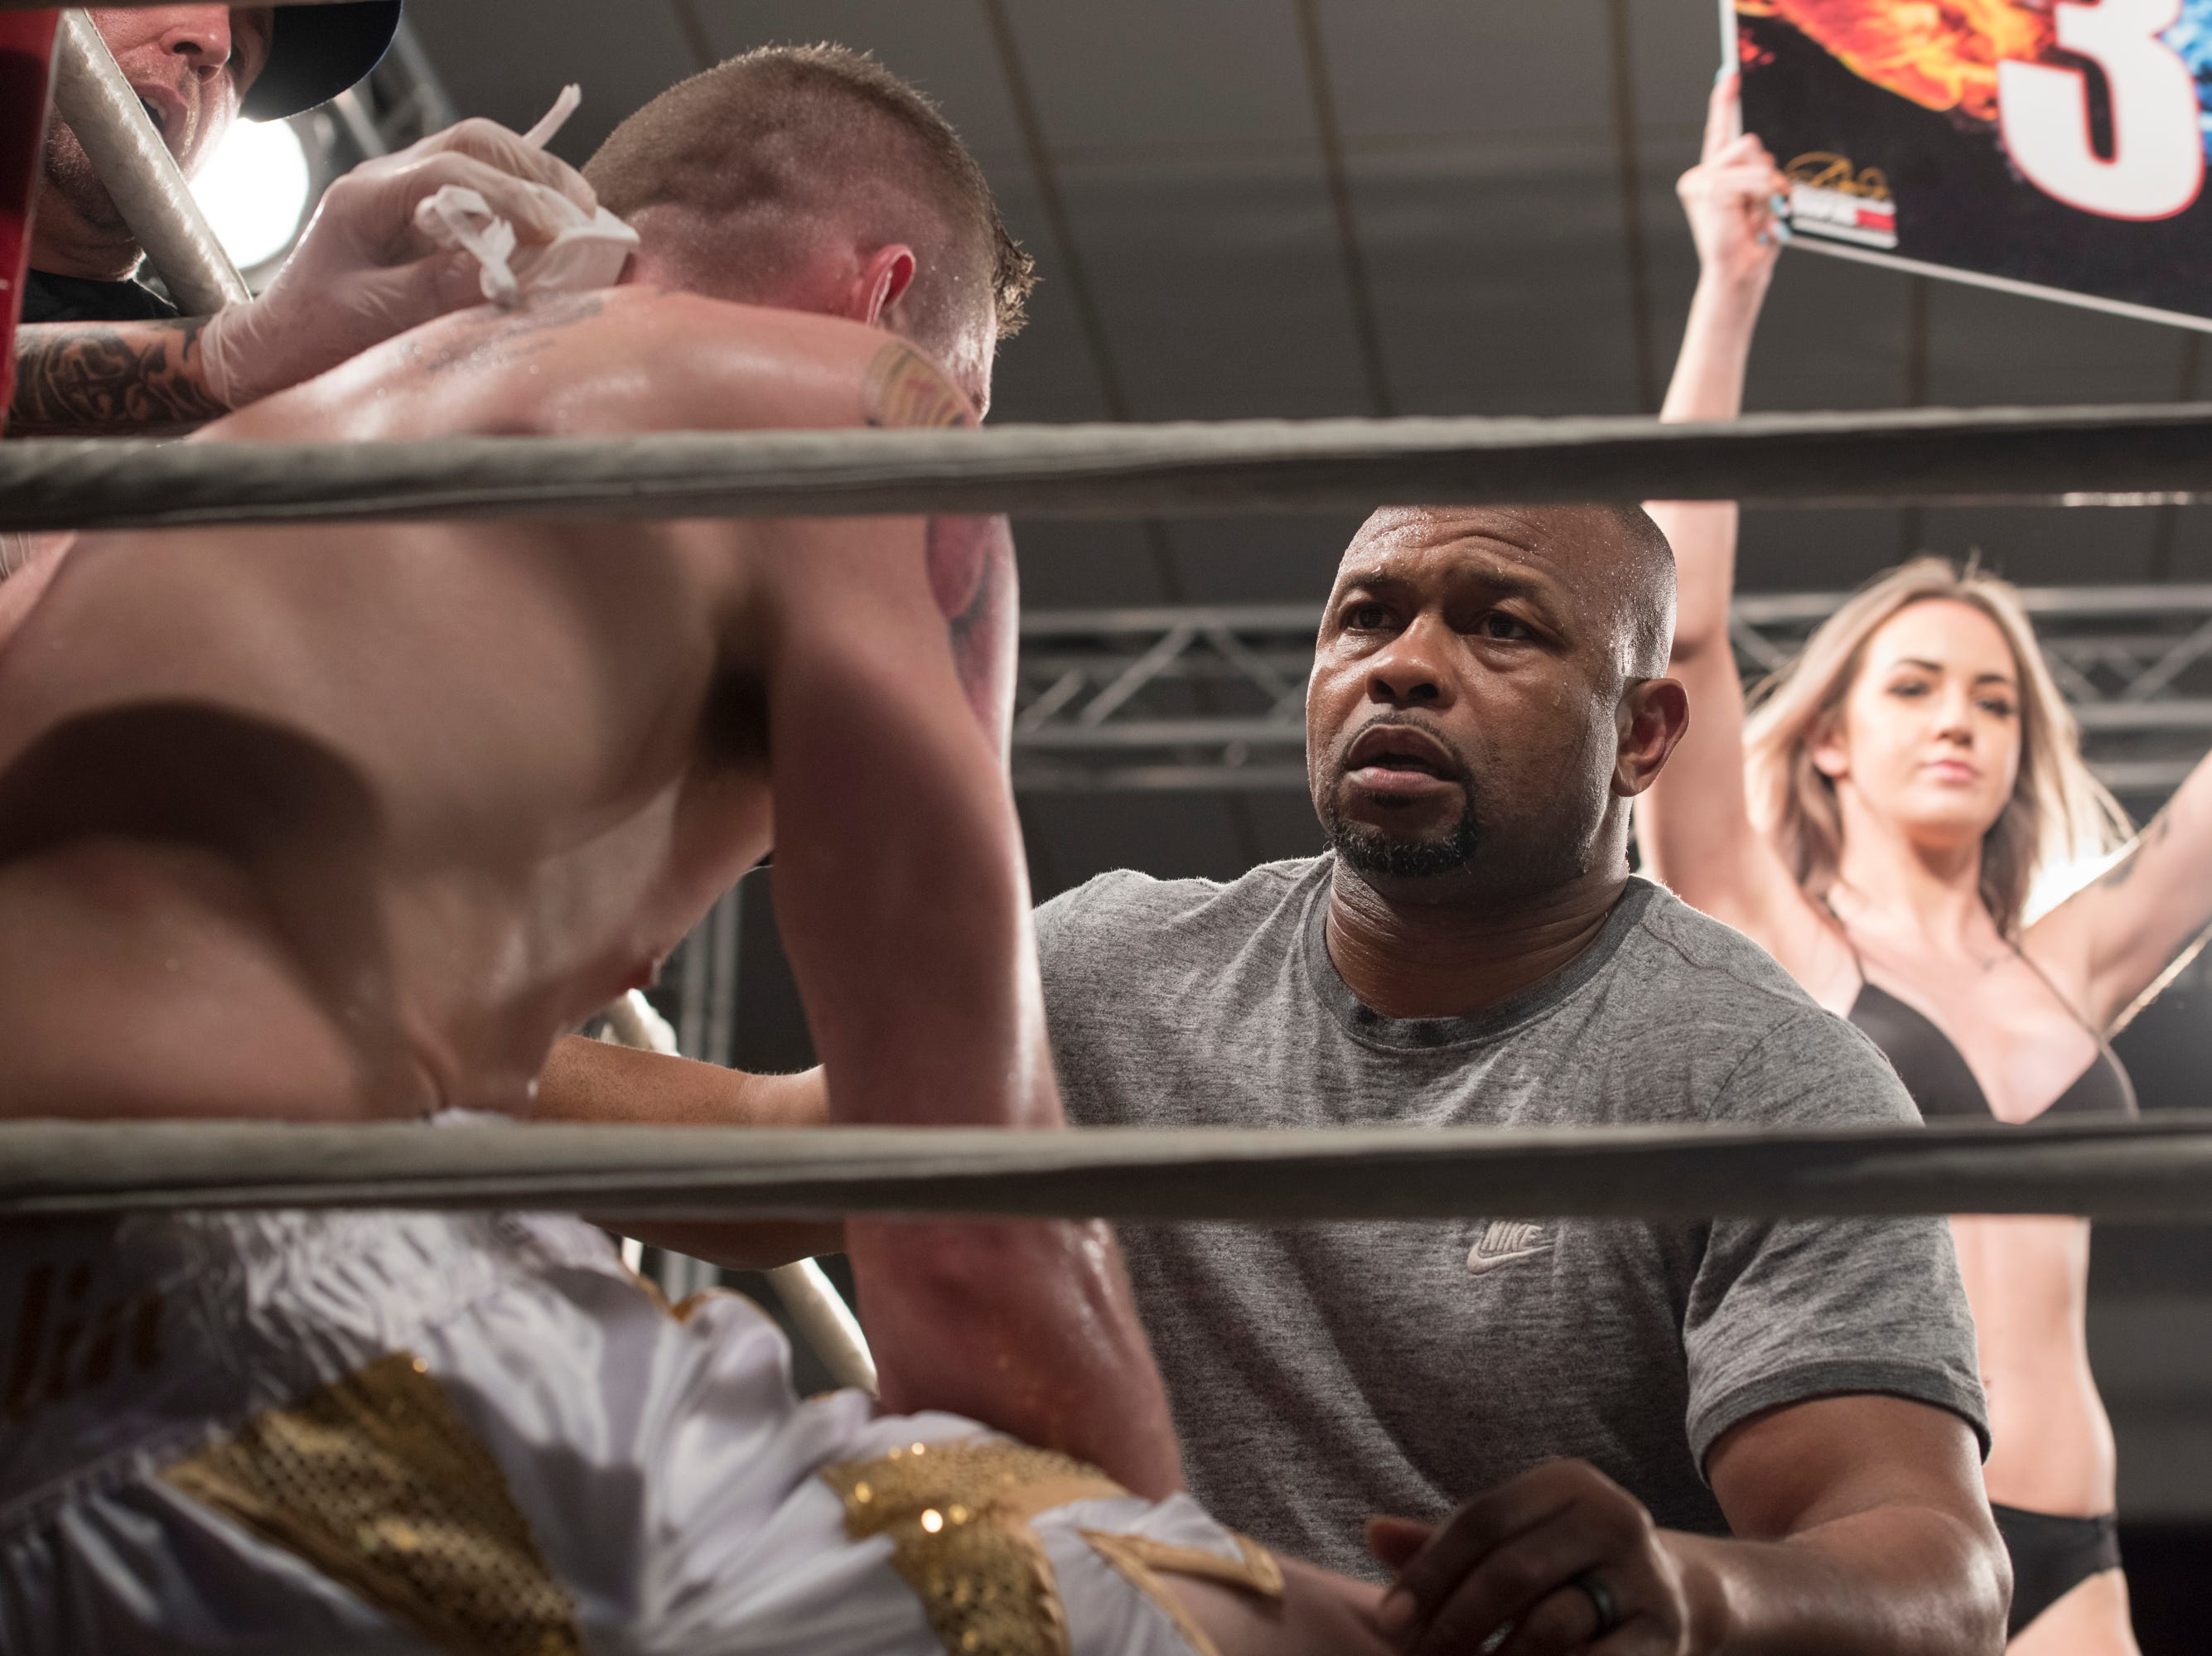 Roy Jones Jr., right, coaches his boxer during the Island Fights 52 at the Jadji Shrine in Pensacola on Thursday, February 7, 2019.